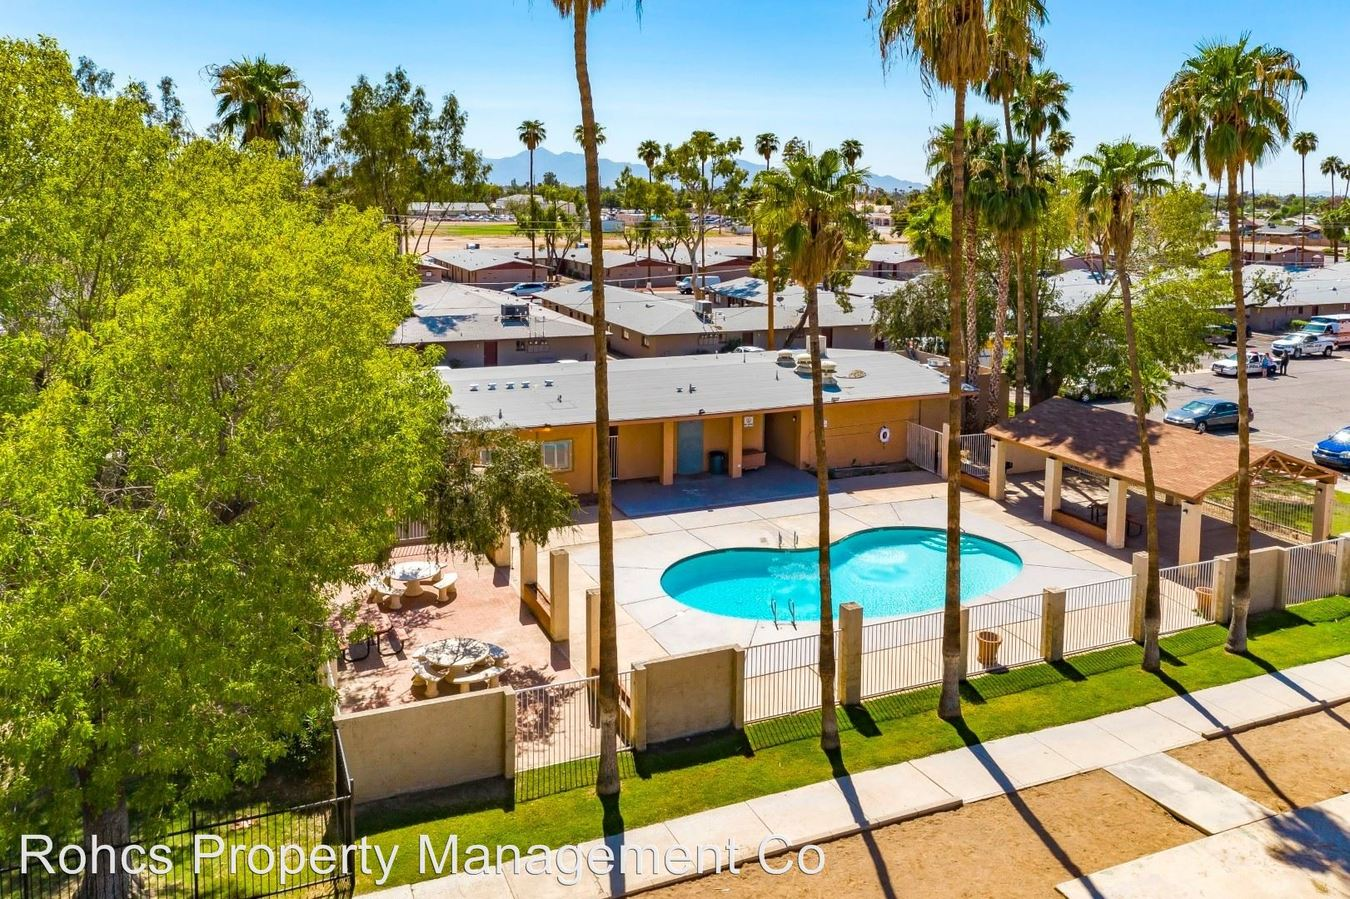 1 Bedroom 1 Bathroom Apartment for rent at 5701 N. 67th Avenue in Glendale, AZ